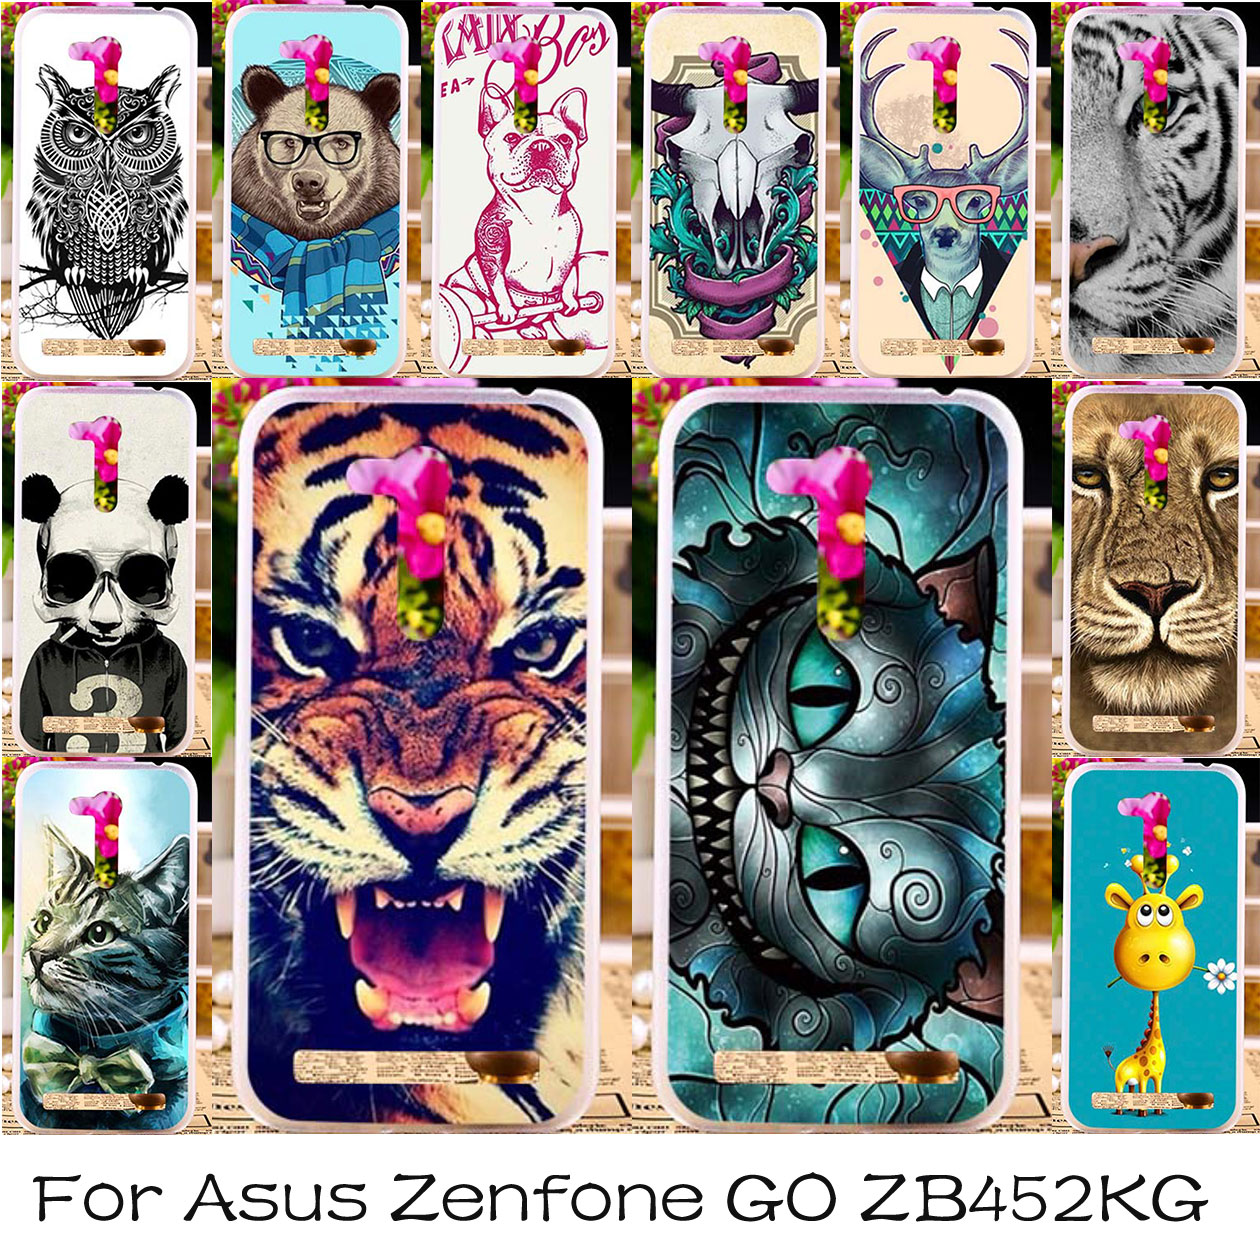 Grosir Asus X014d Silicon Case Gallery Buy Low Price Zb45 Lots On Aliexpresscom